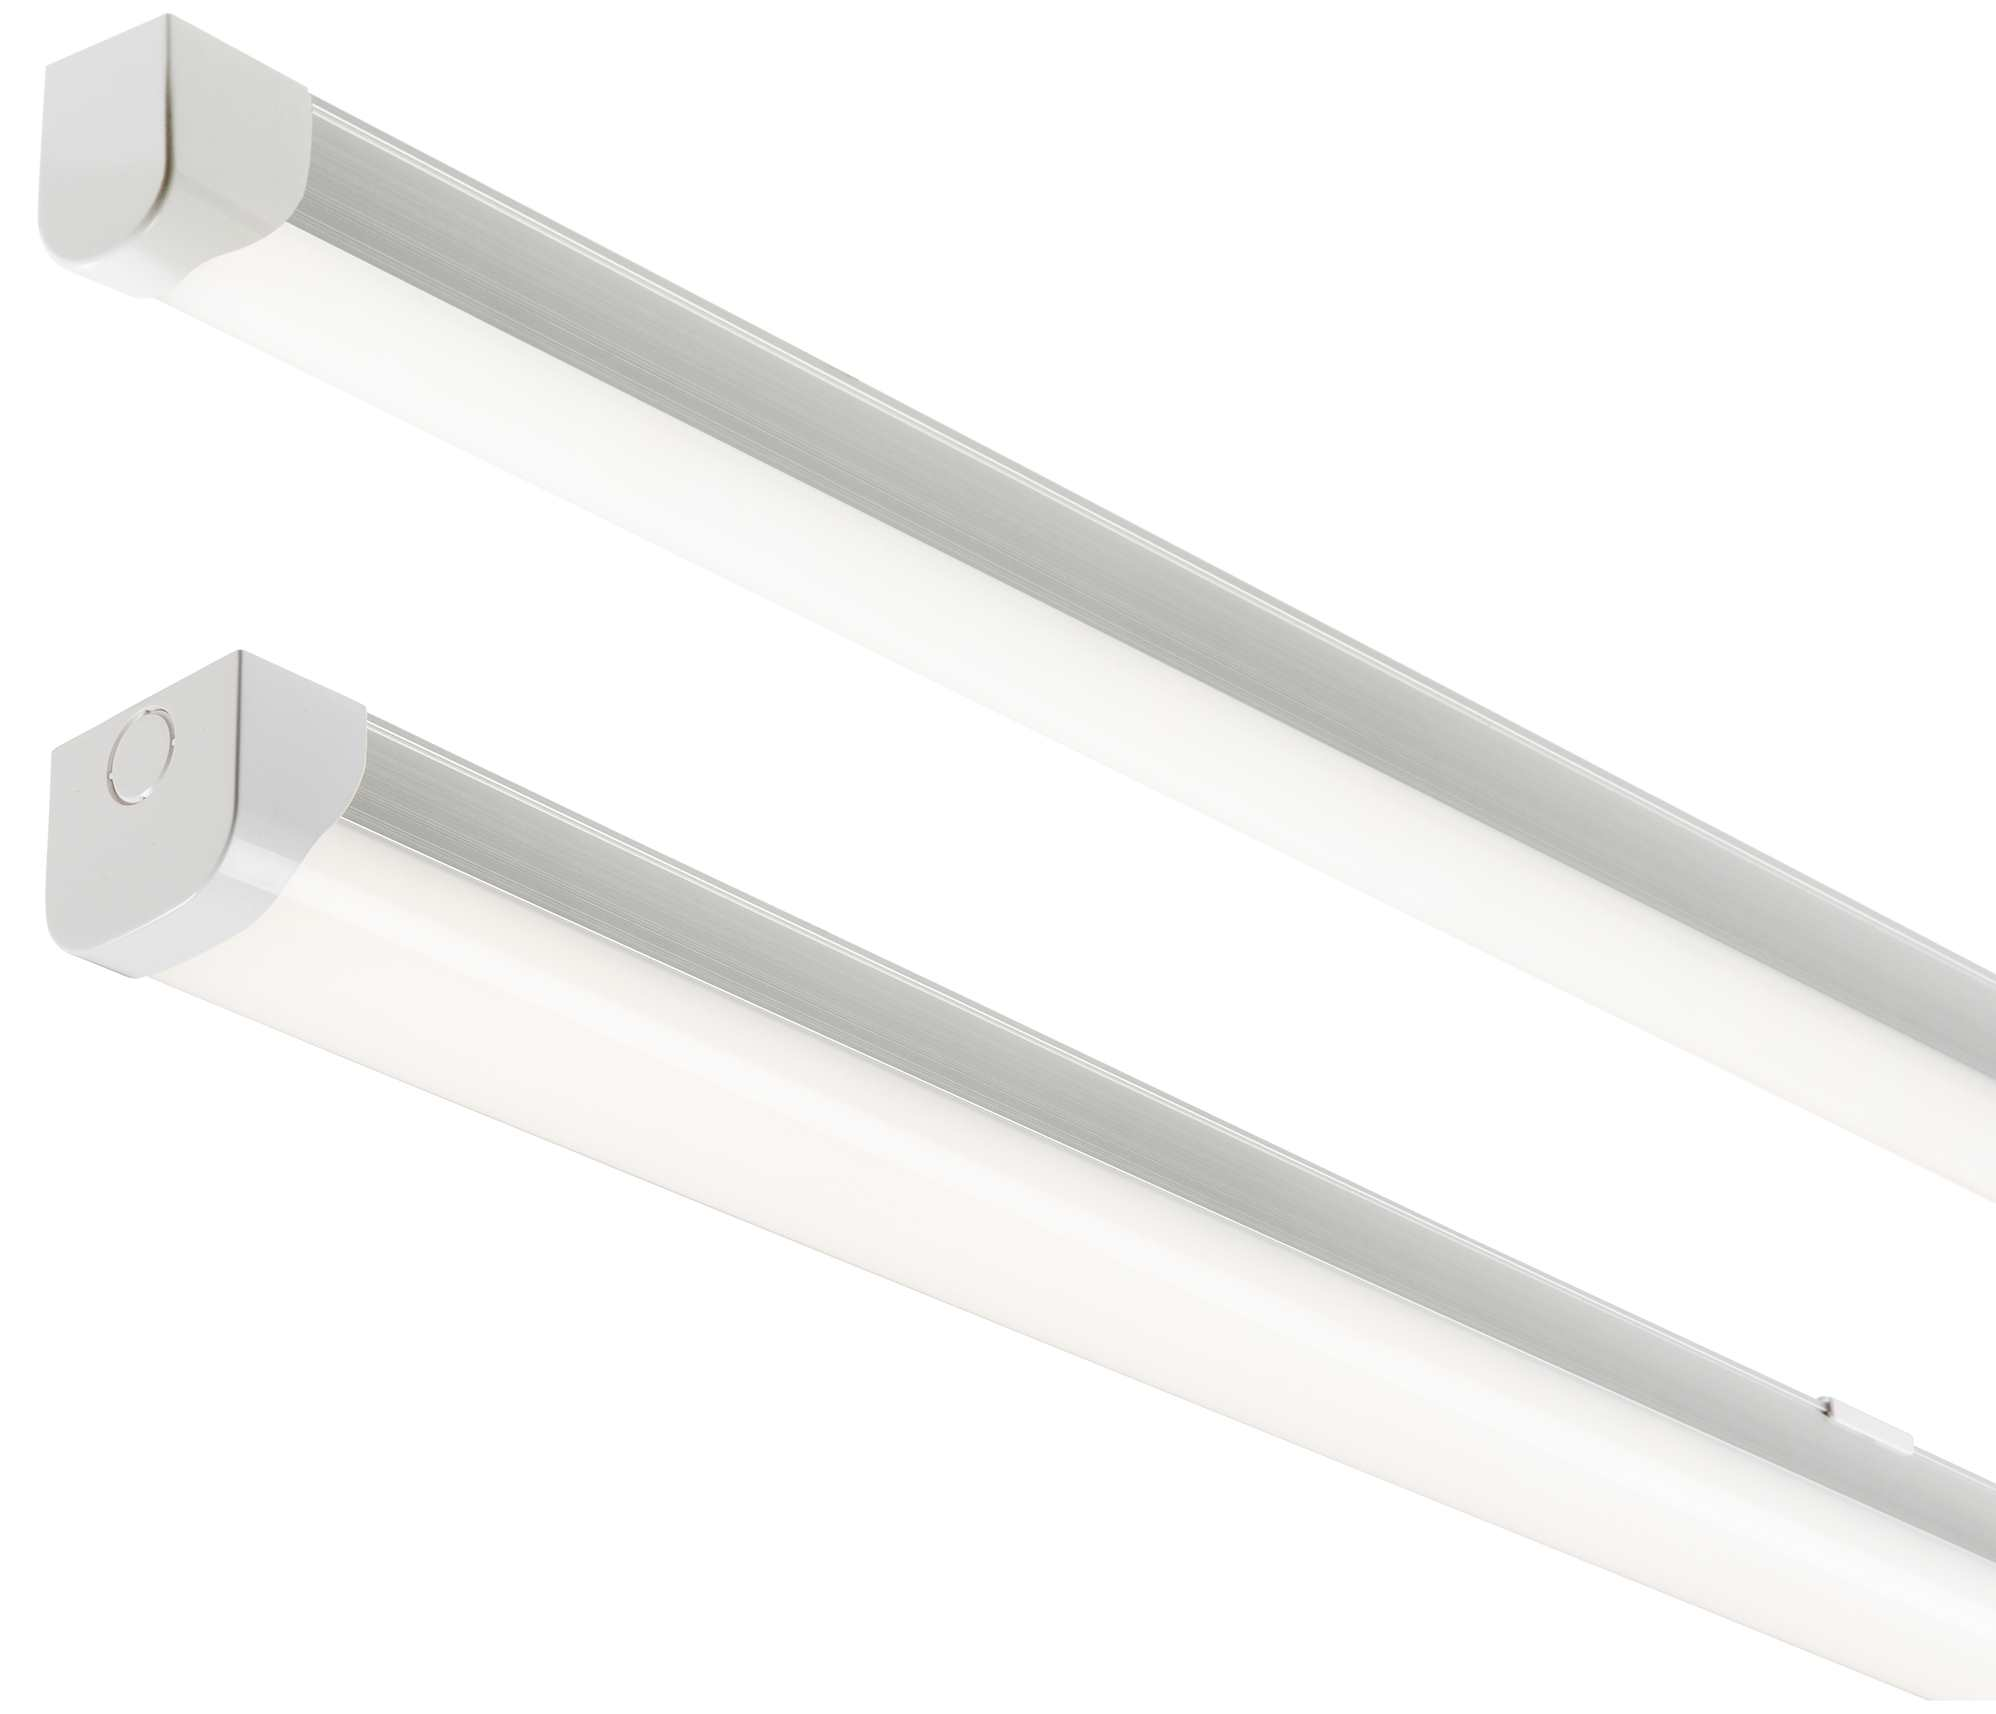 Details about Knightsbridge LED Battens Single or Twin Std or Emergency  Cool White IP20